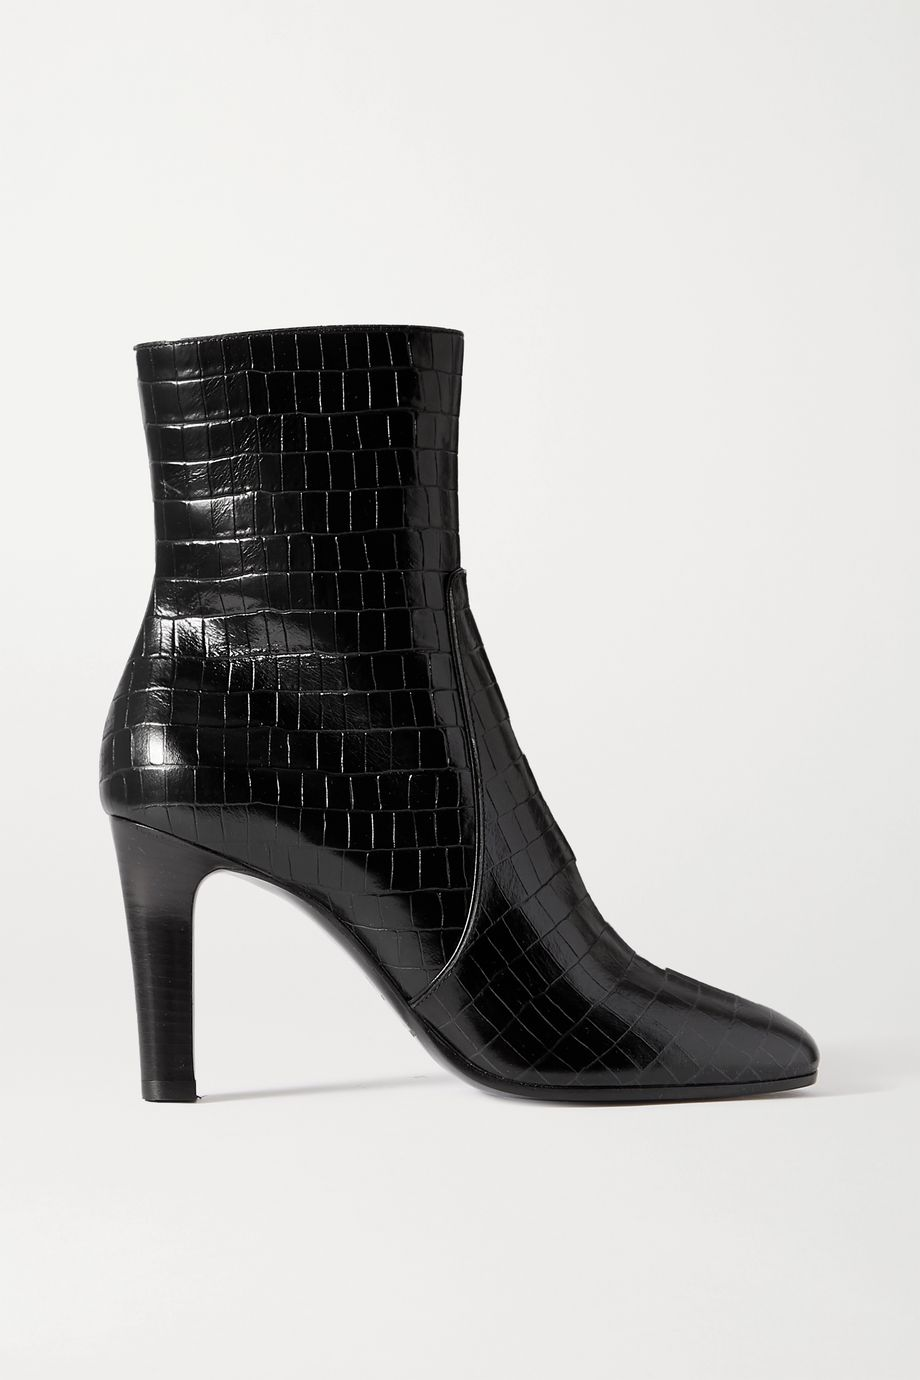 SAINT LAURENT Blu croc-effect leather ankle boots